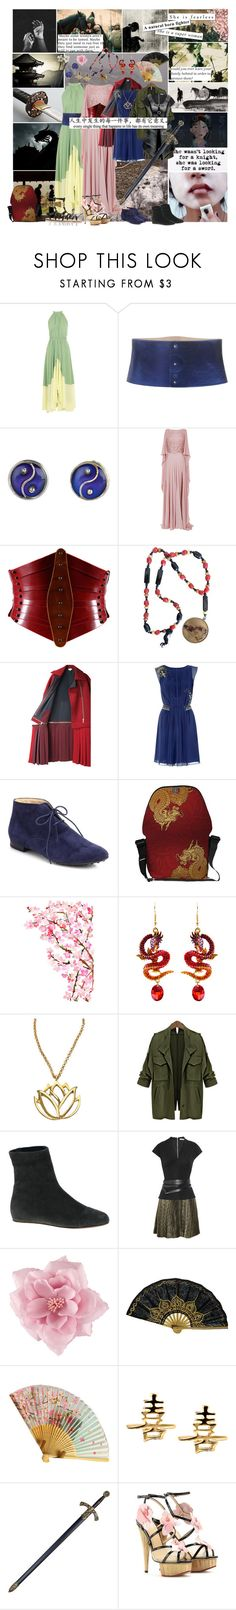 """Fa Mulan"" by smol-snowflake ❤ liked on Polyvore featuring Cullen, GET LOST, Saloni, Roberto Cavalli, Monsoon, Elie Saab, Úna Burke, Just Cavalli, Kenzo and Tod's"